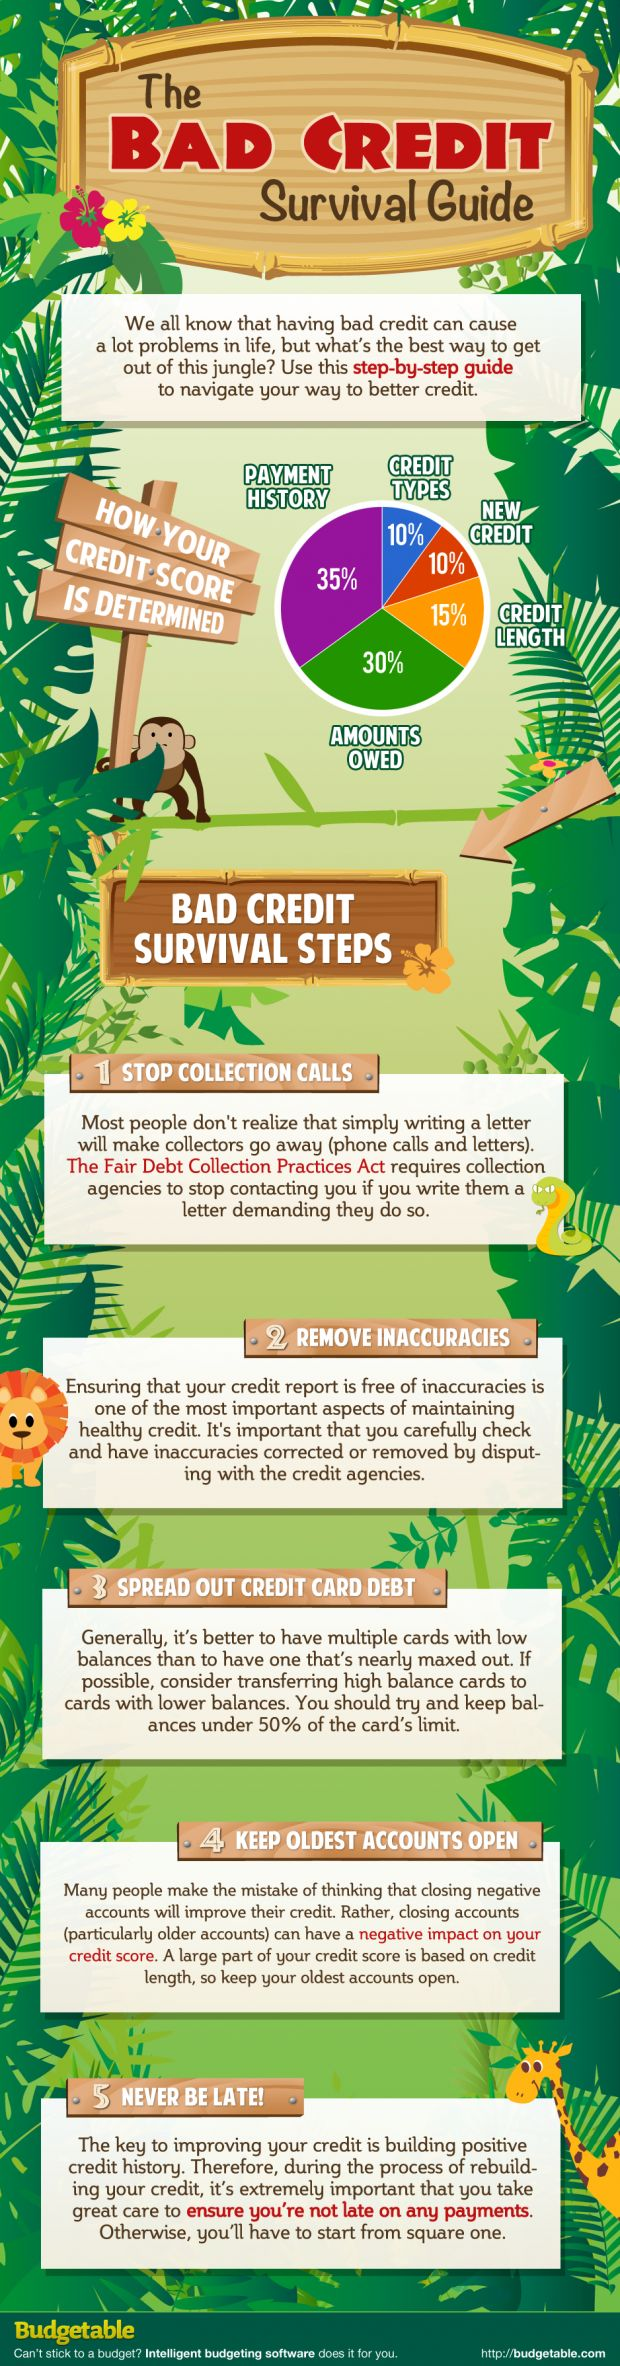 The Bad Credit Survival Guide